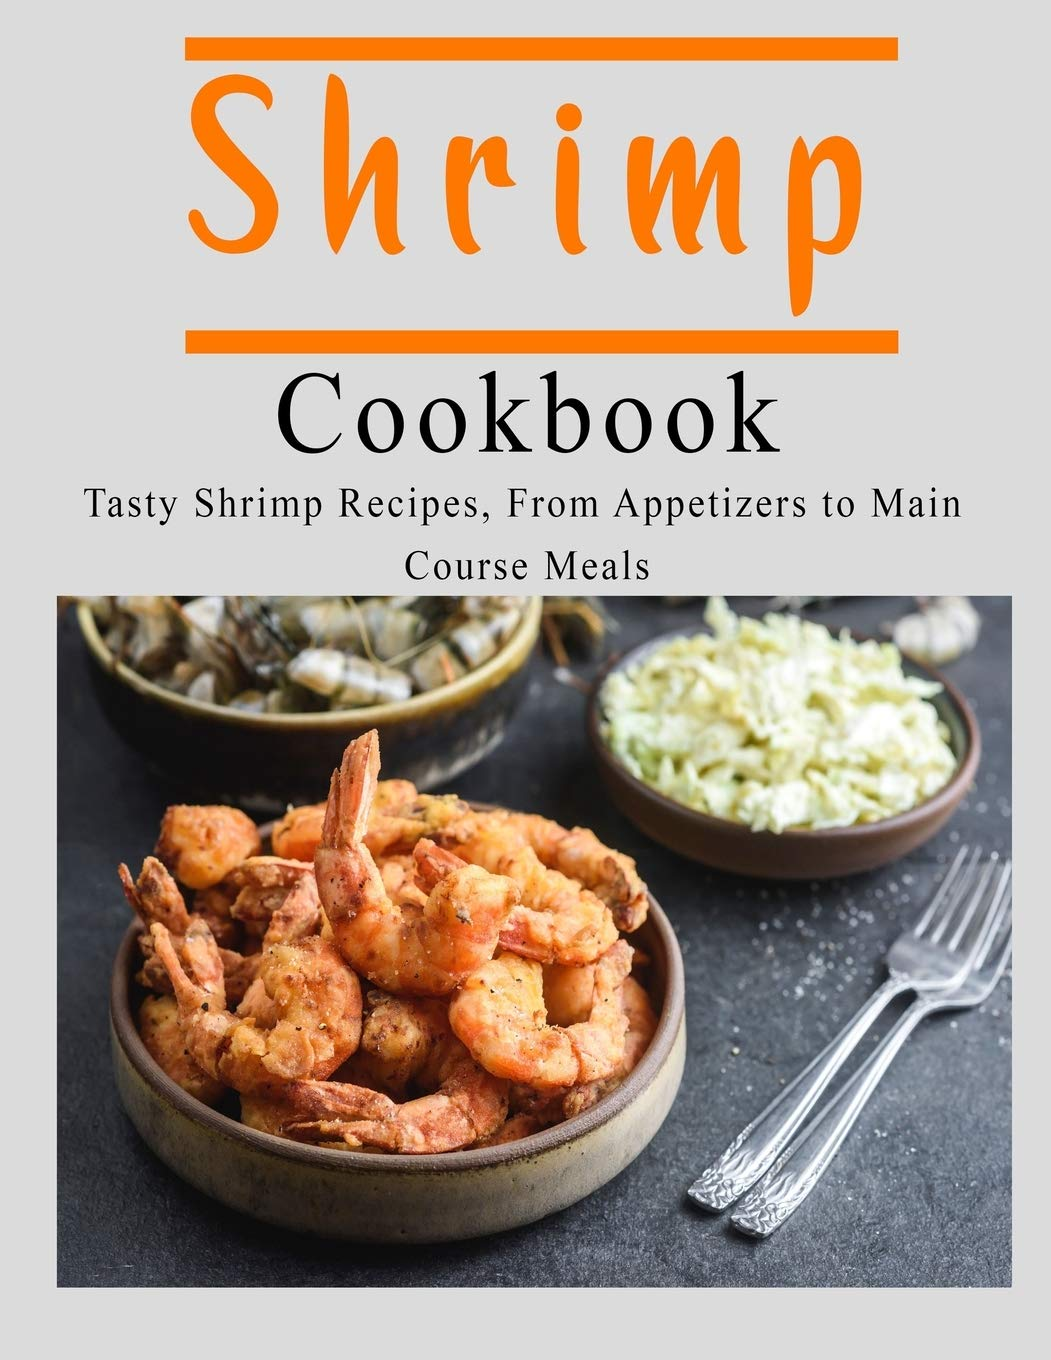 Shrimp Cookbook: Tasty Shrimp Recipes, From Appetizers to Main Course Meals